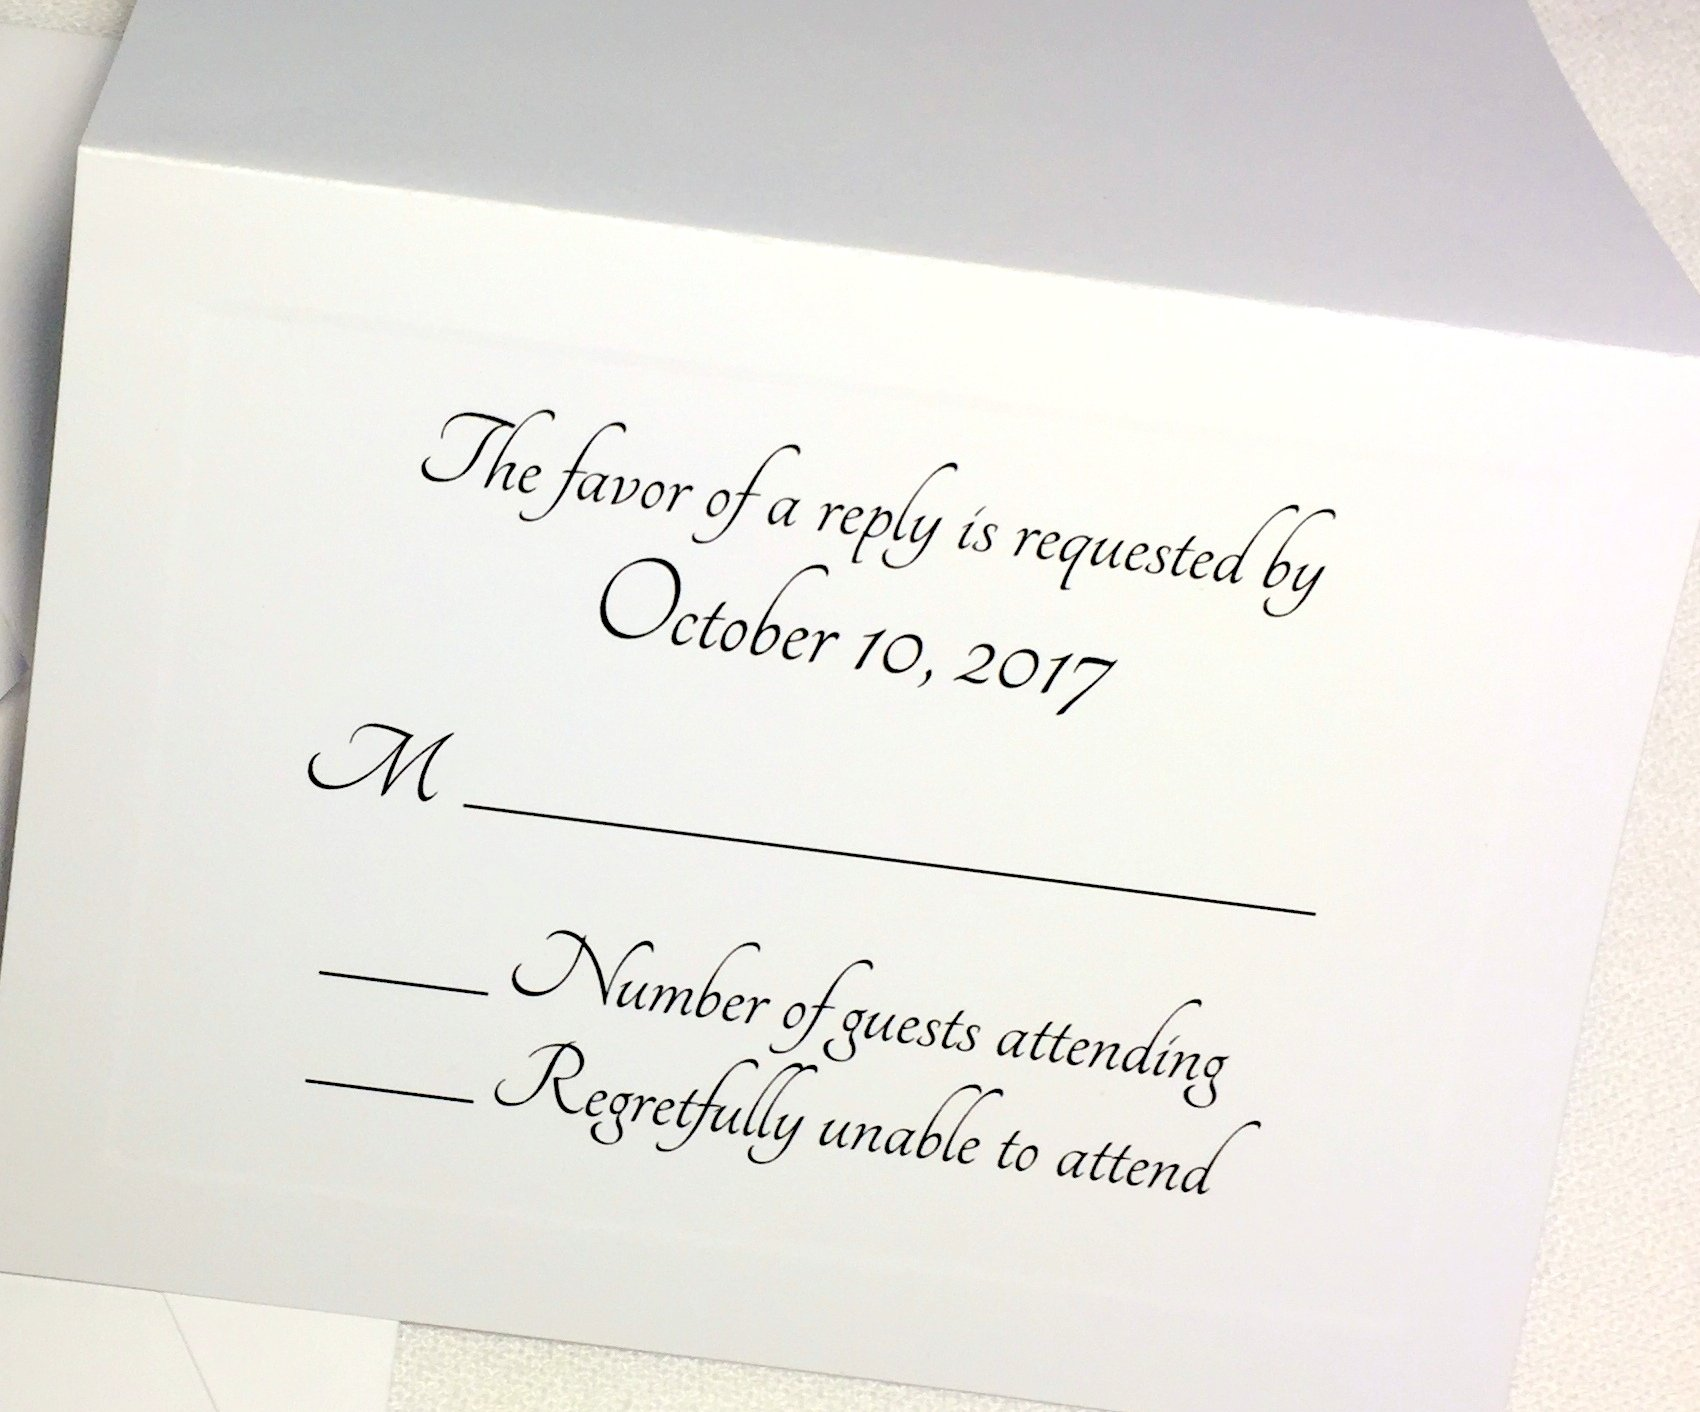 50 Custom RSVP Response Cards with Envelopes. WHITE cards with elegant raised panel edging. Personalized Wedding, Anniversary, Party RSVP. Several Font Choices. Fold Tent Style. (Modern Flair)